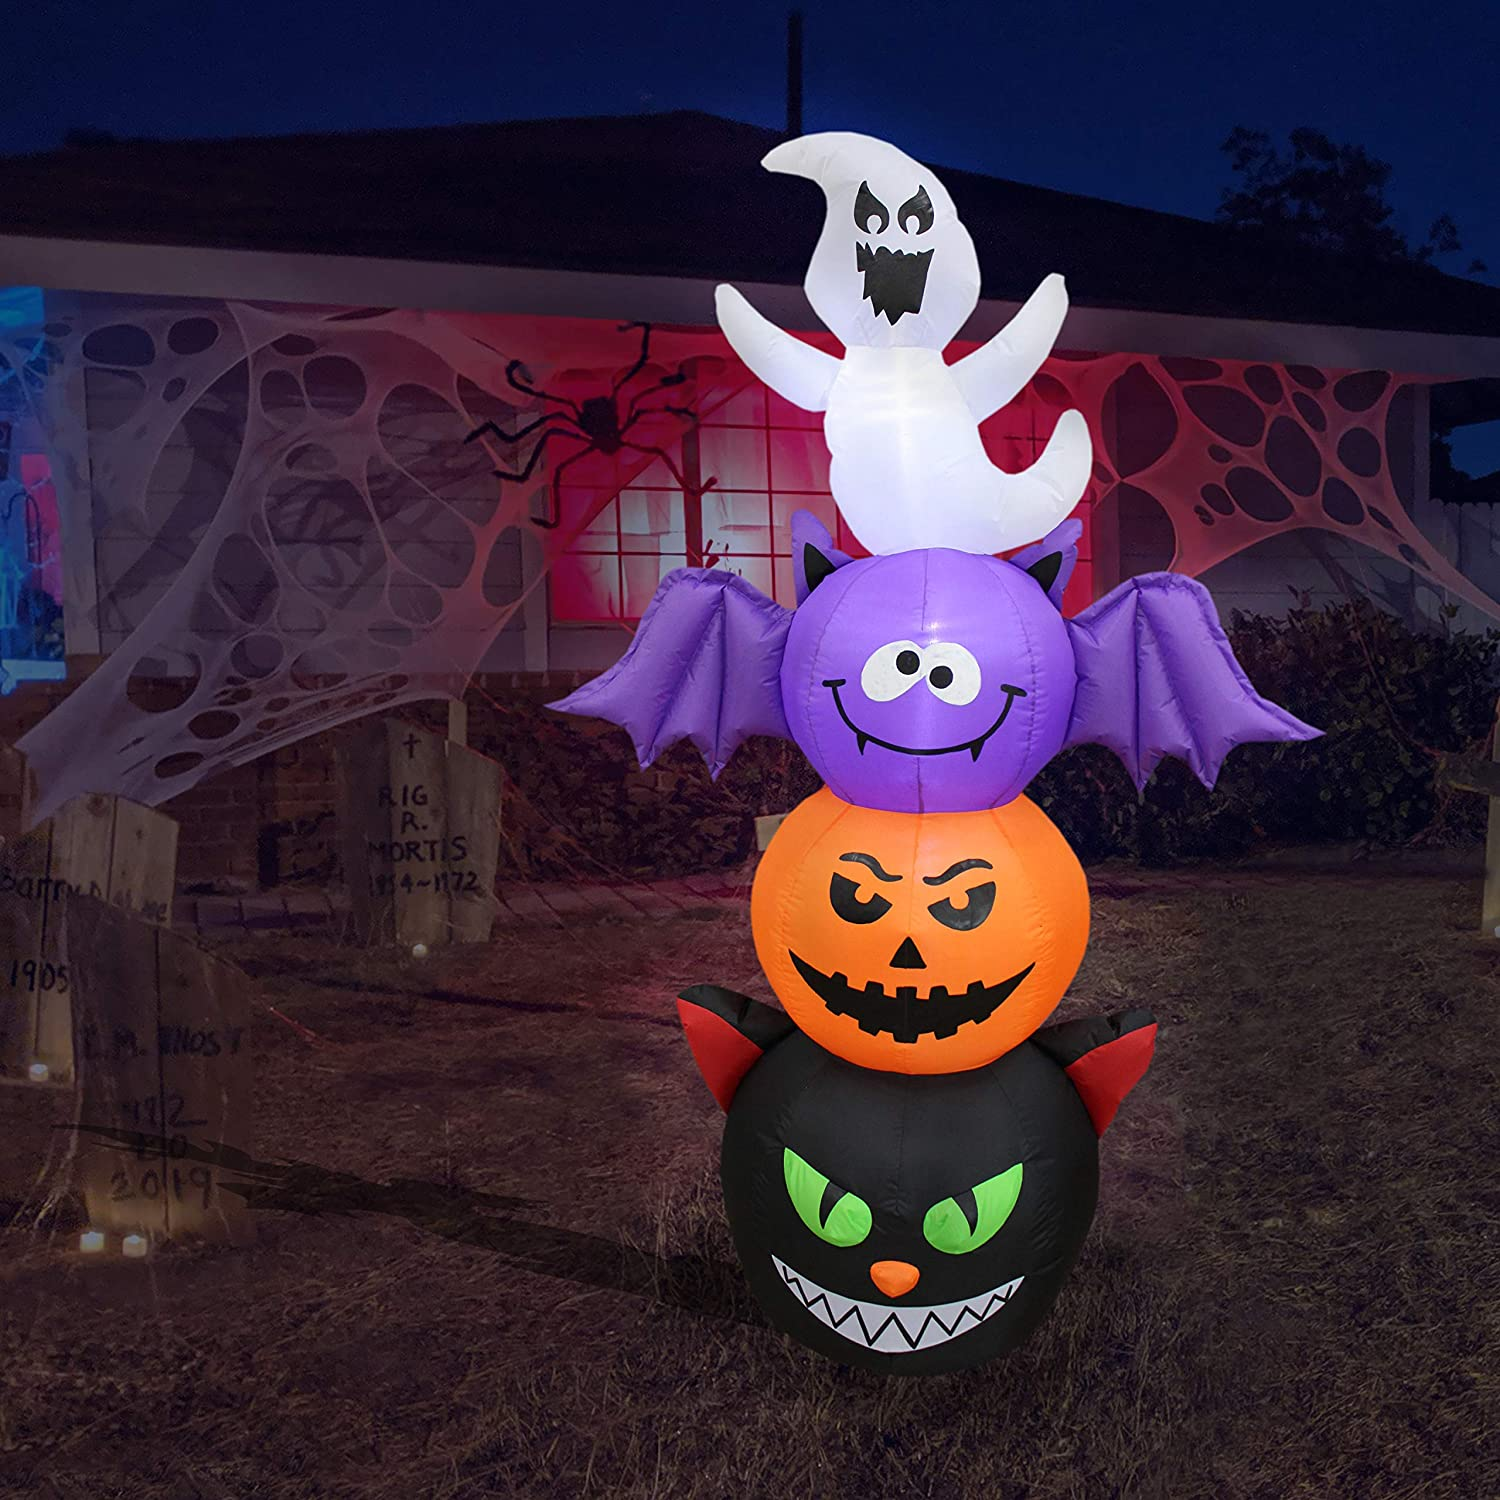 Bzb Goods 6 Foot Tall Halloween Inflatable Stacked Figures Totem Pole Ghost Bat Pumpkin And Cat Garden Yard Decoration Amazon Ca Patio Lawn Garden